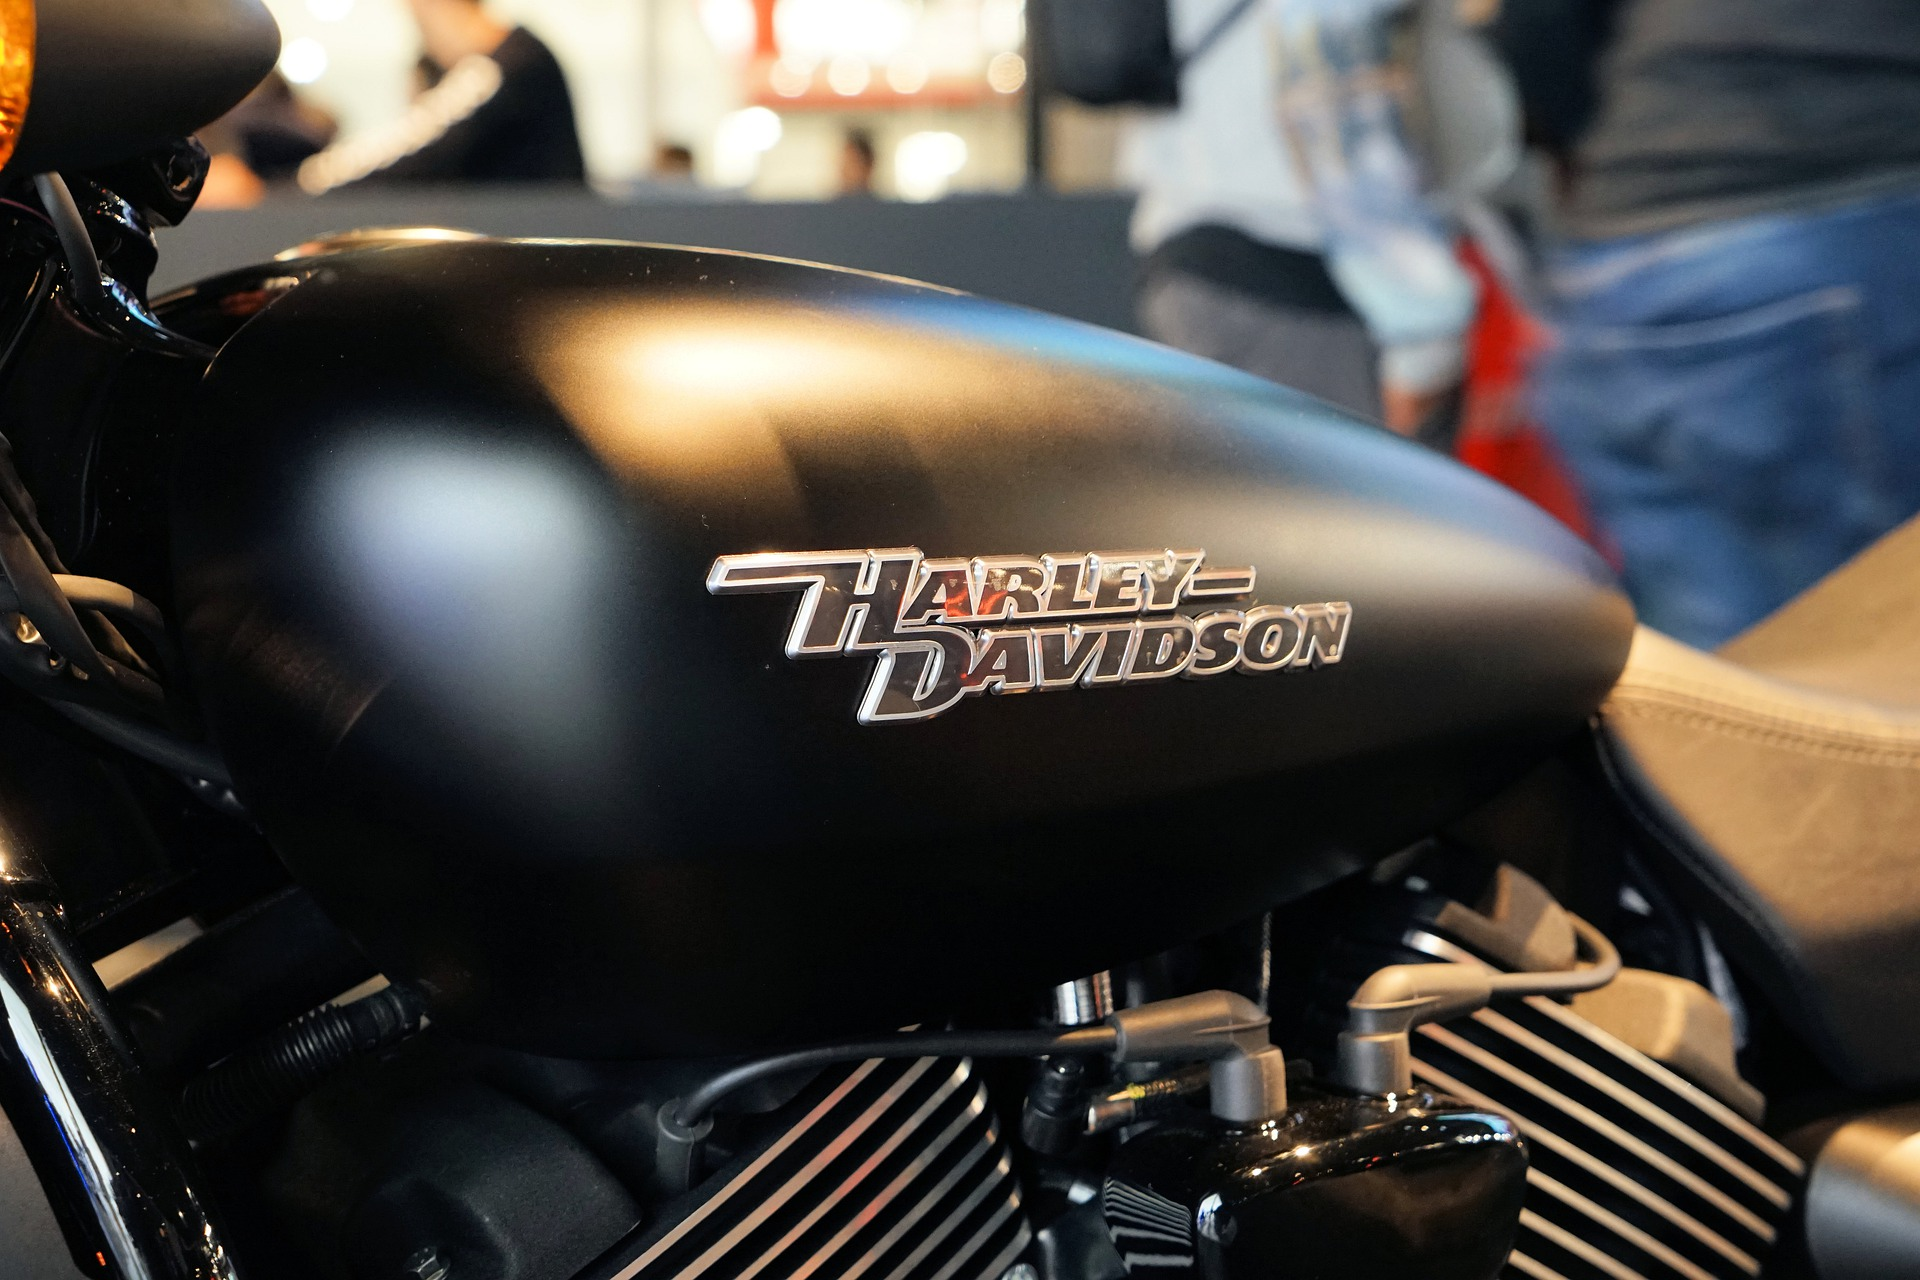 Harley Davidson HOG stock news and analysis